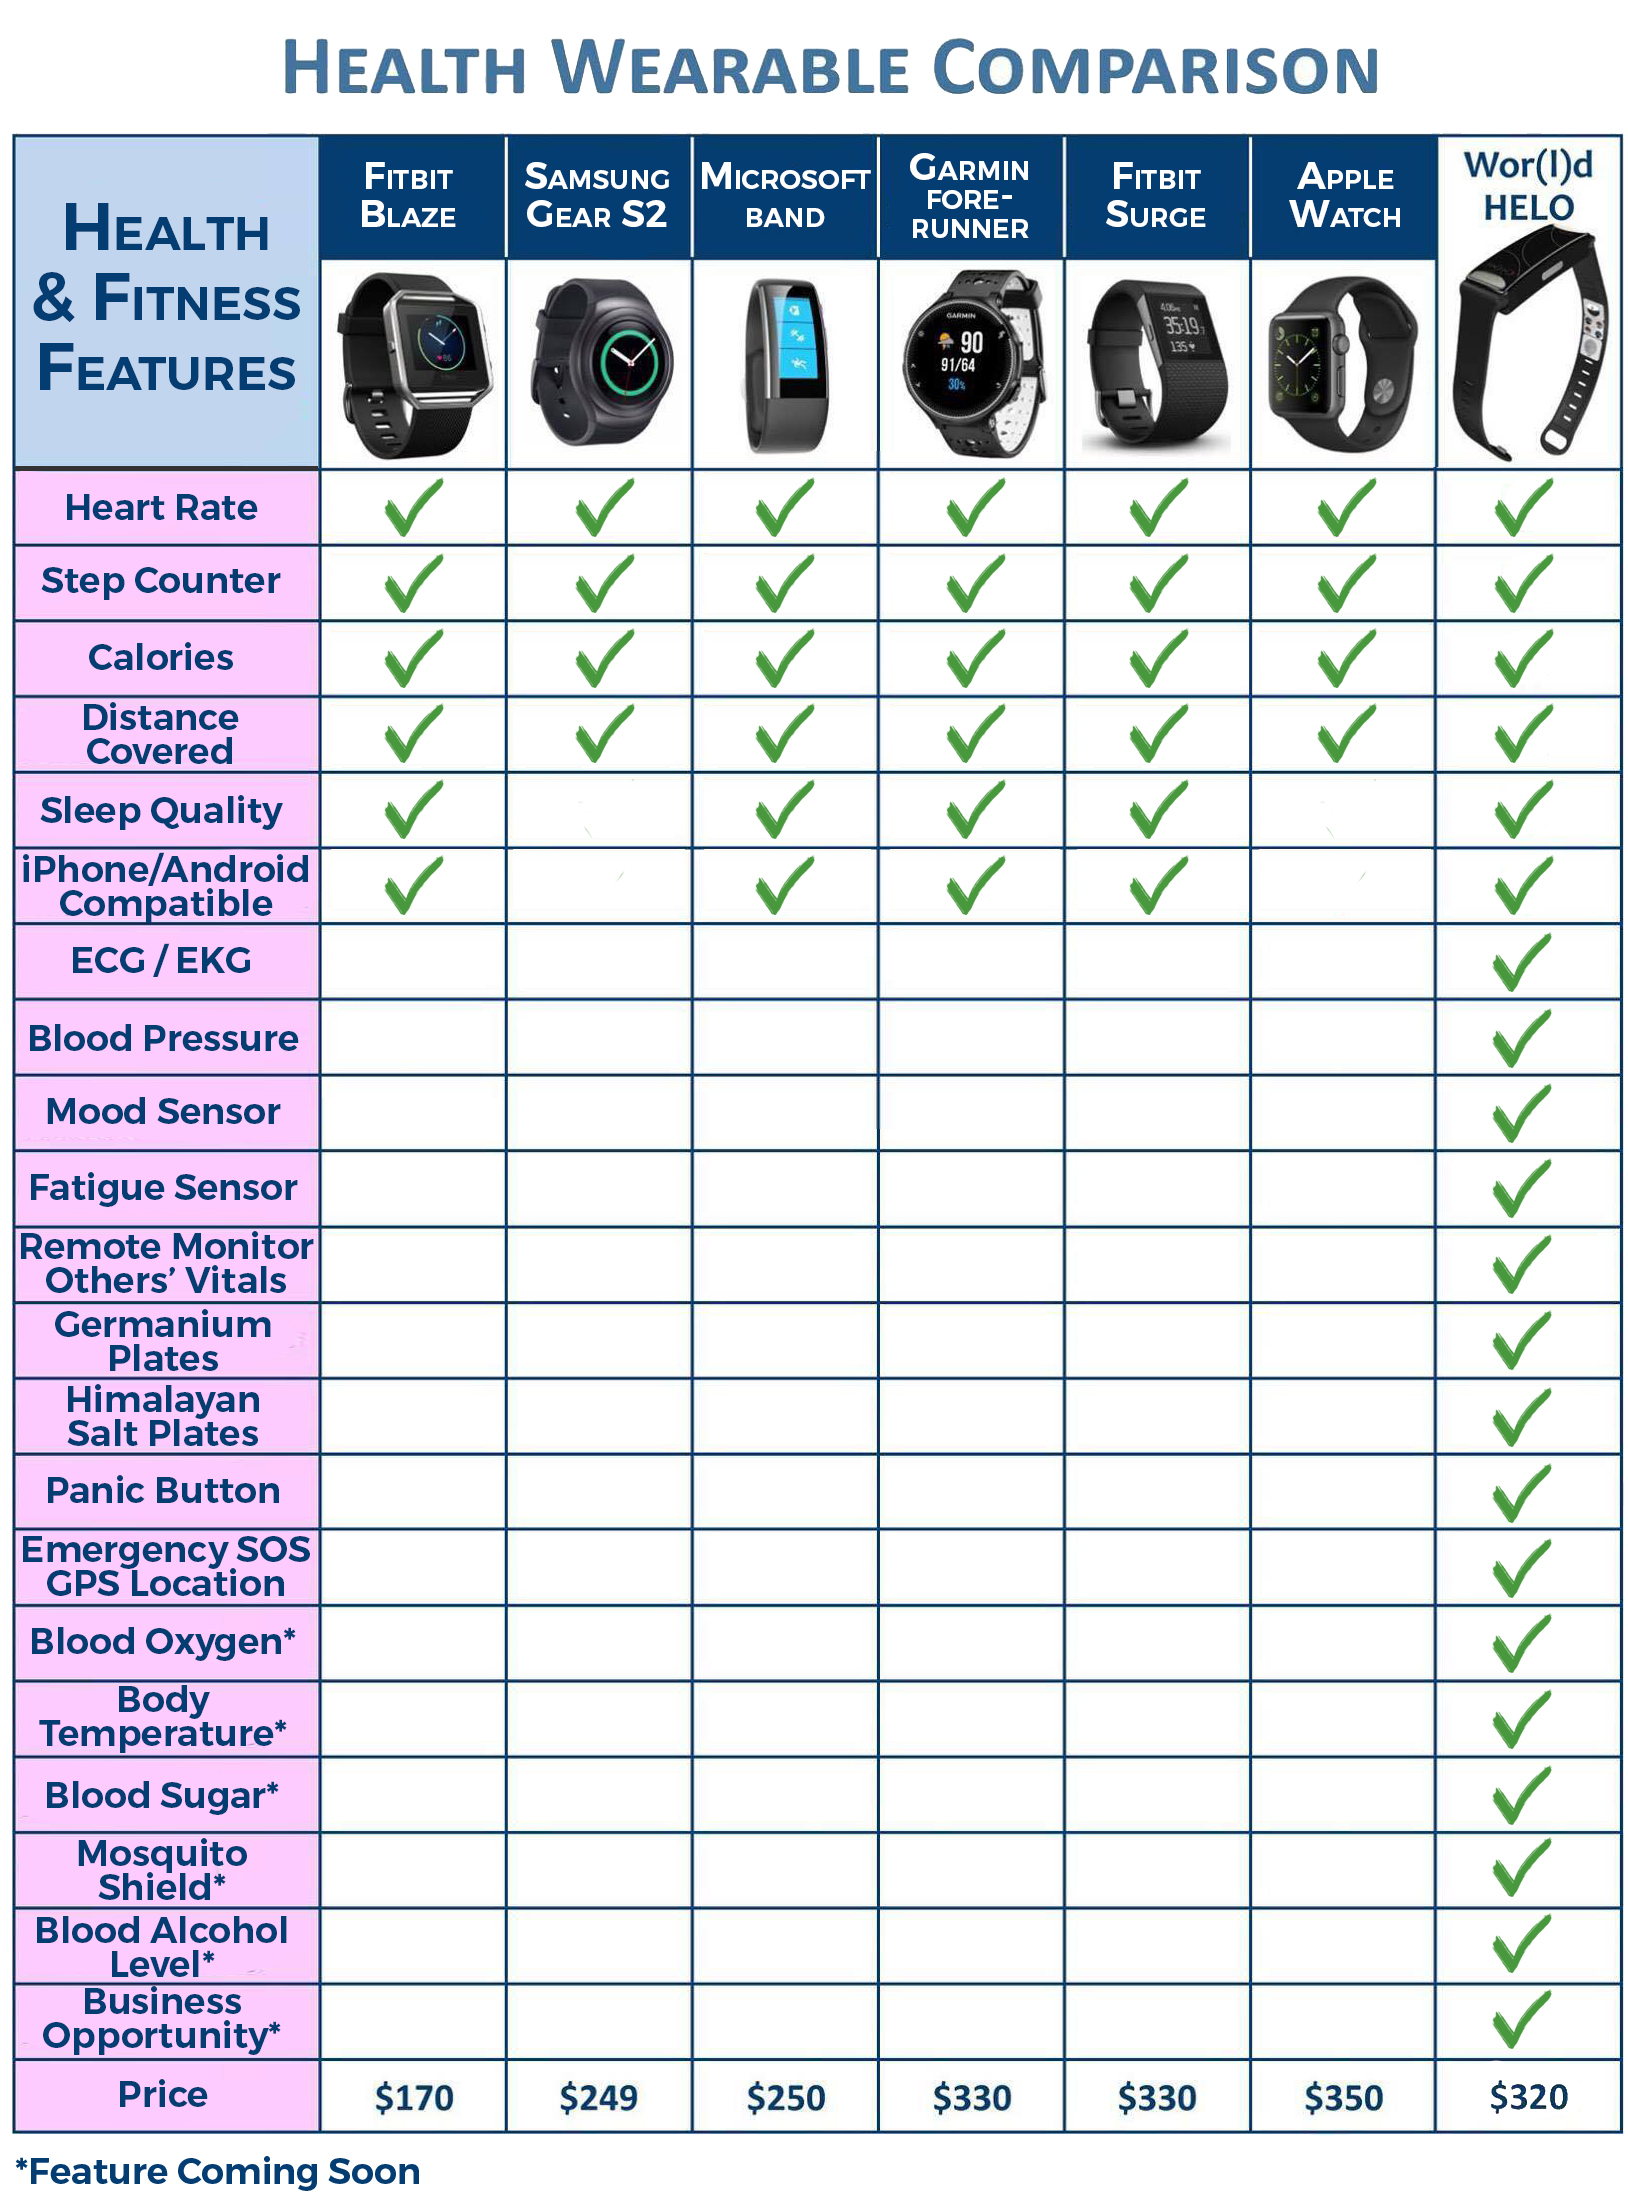 Health Wearable Comparison Large Thousand Oaks Family Well Being